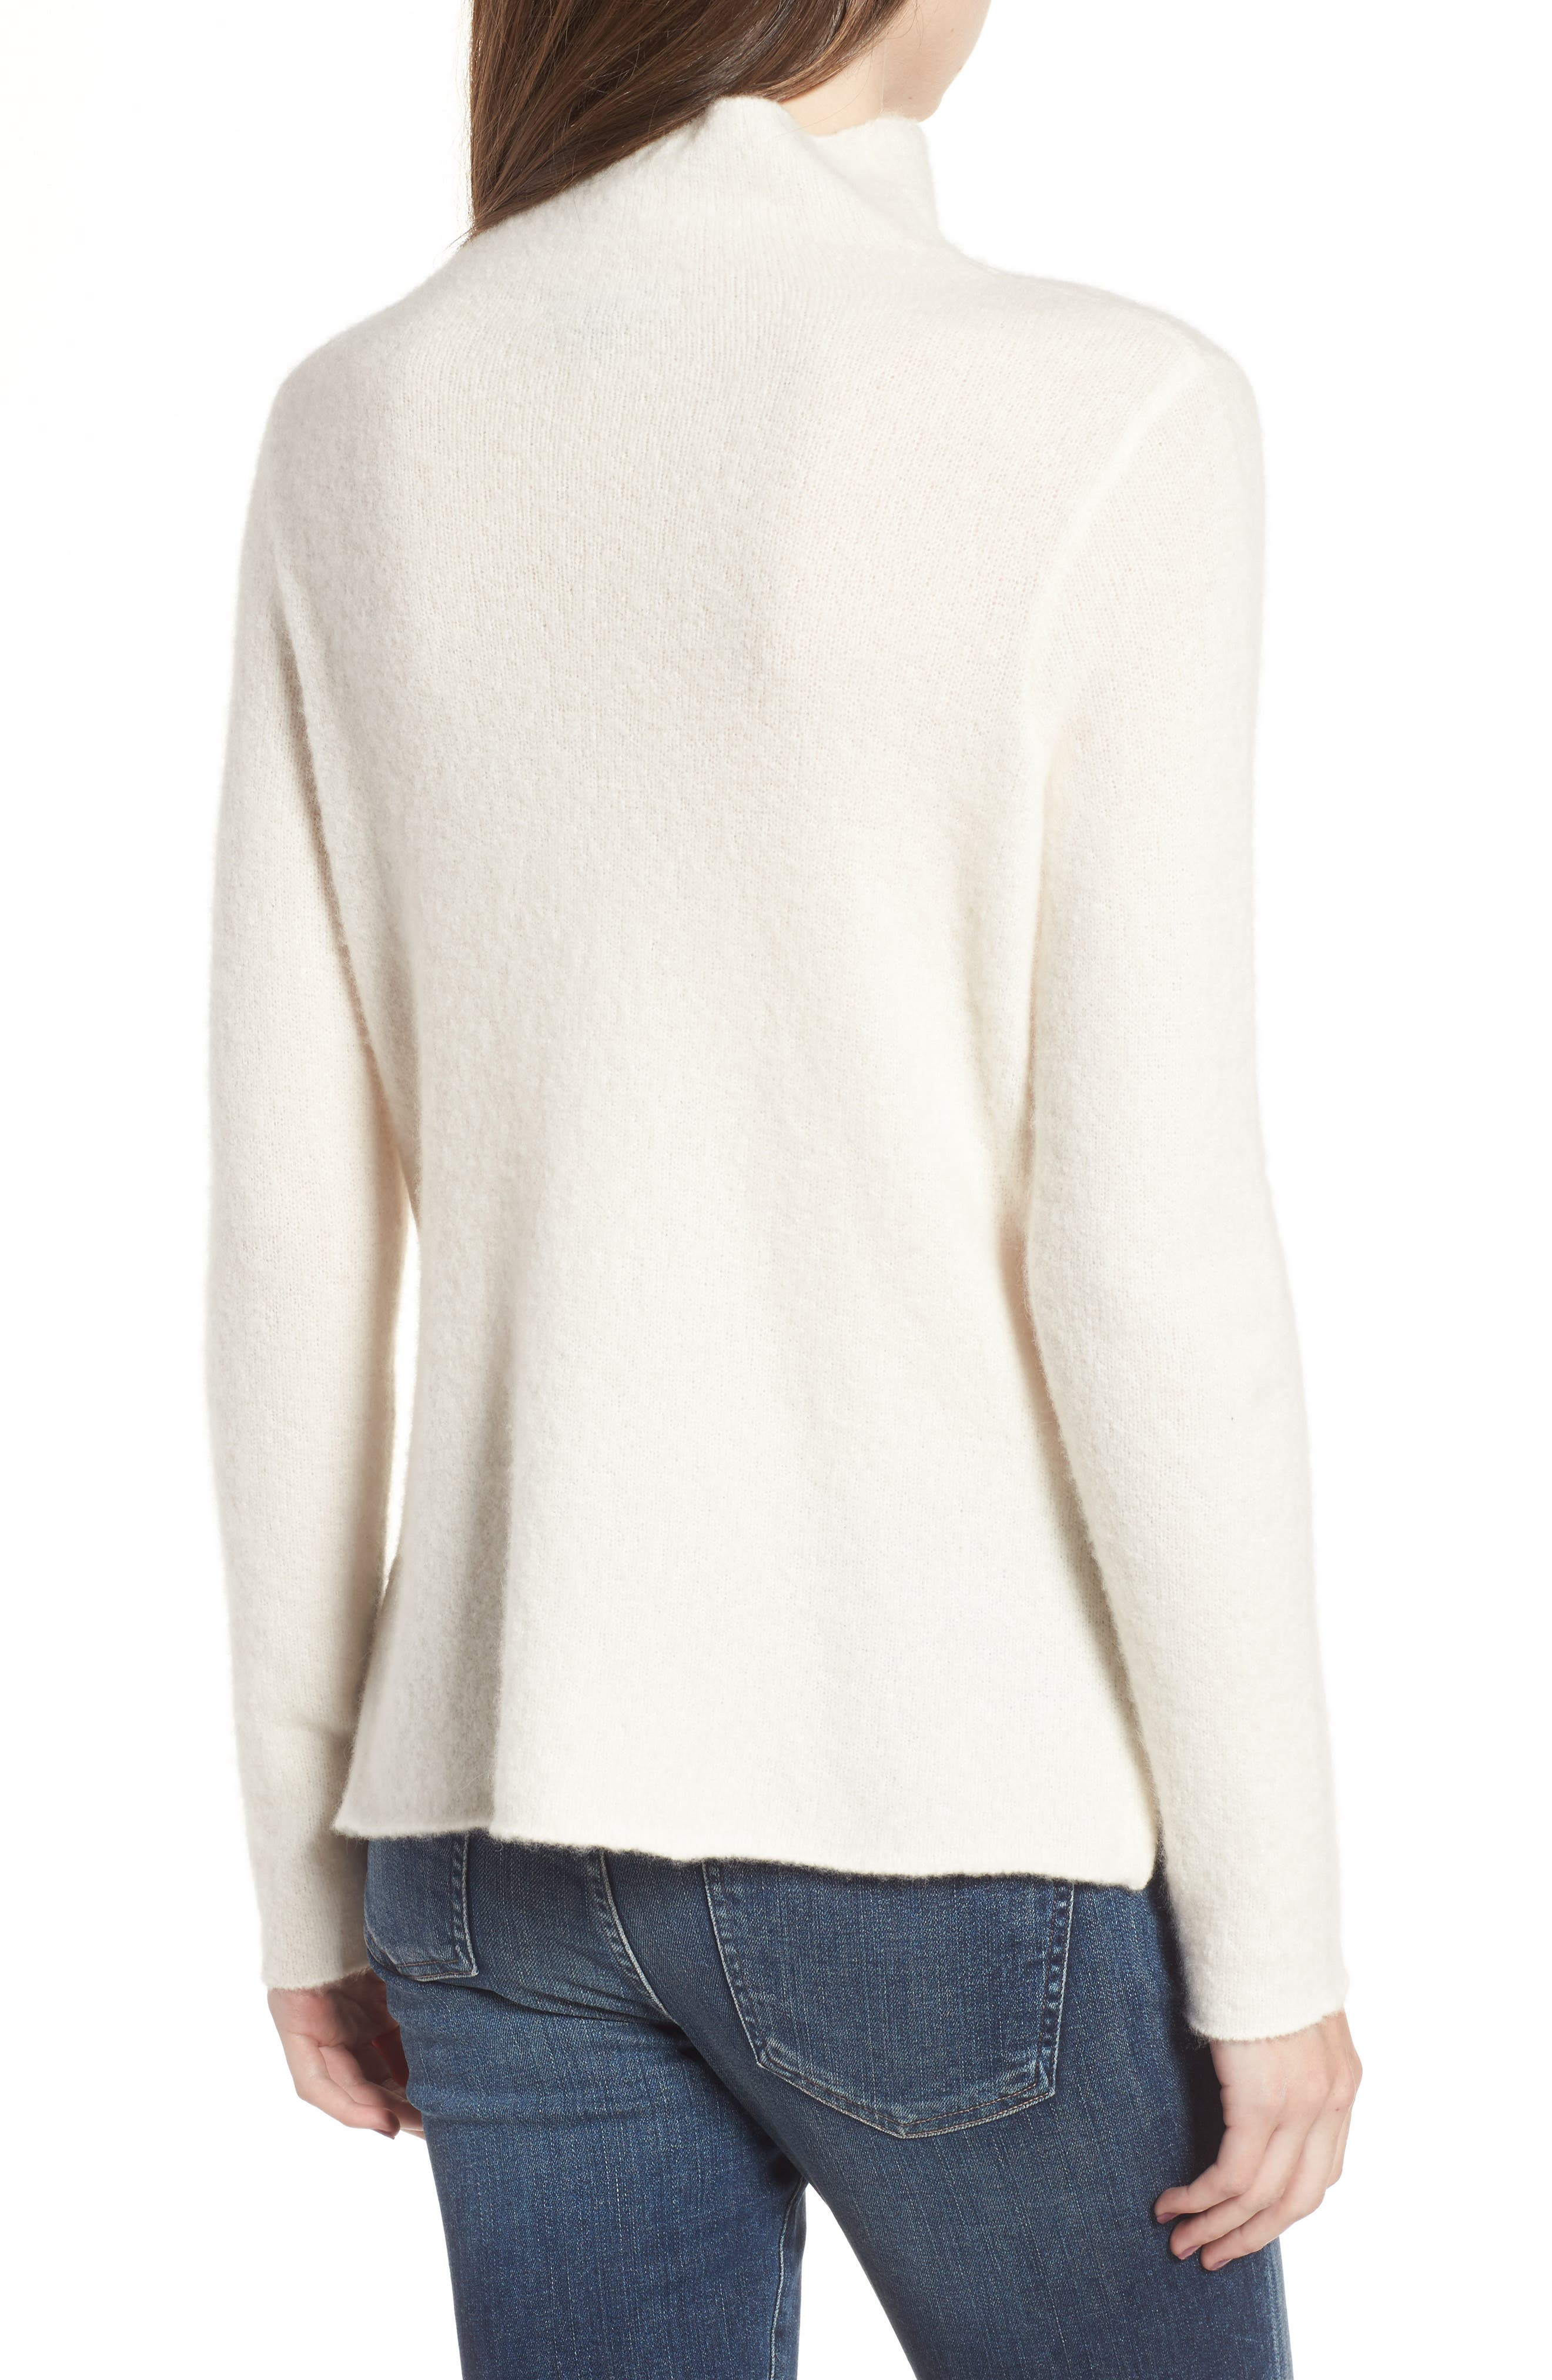 Stretch Cashmere Mock Neck Sweater,                             Alternate thumbnail 2, color,                             Ivory